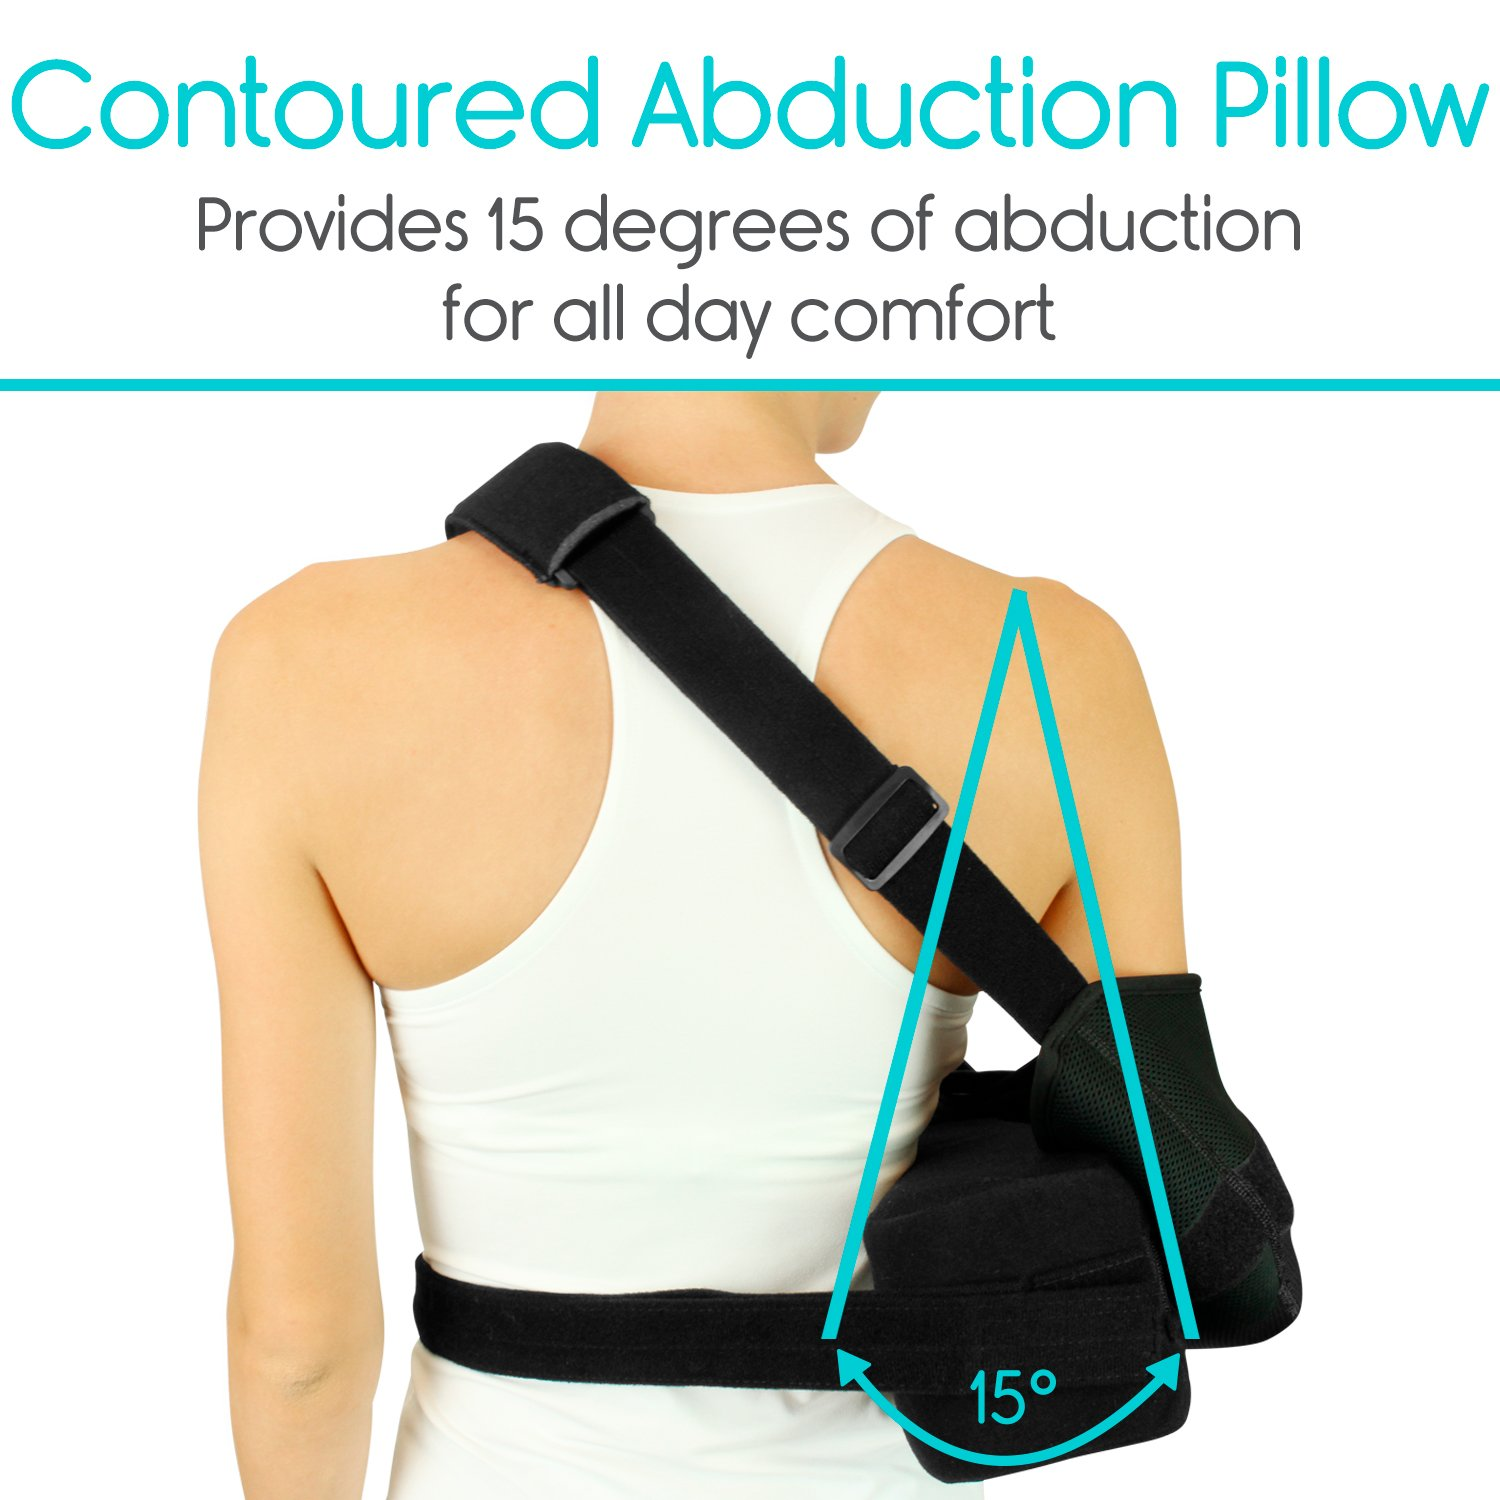 Vive Shoulder Sling - Abduction Immobilizer for Injury Support - Pain Relief Arm Pillow for Rotator Cuff, Sublexion, Surgery, Dislocated, Broken Arm - Brace Includes Pocket Strap, Stress Ball, Wedge by VIVE (Image #2)